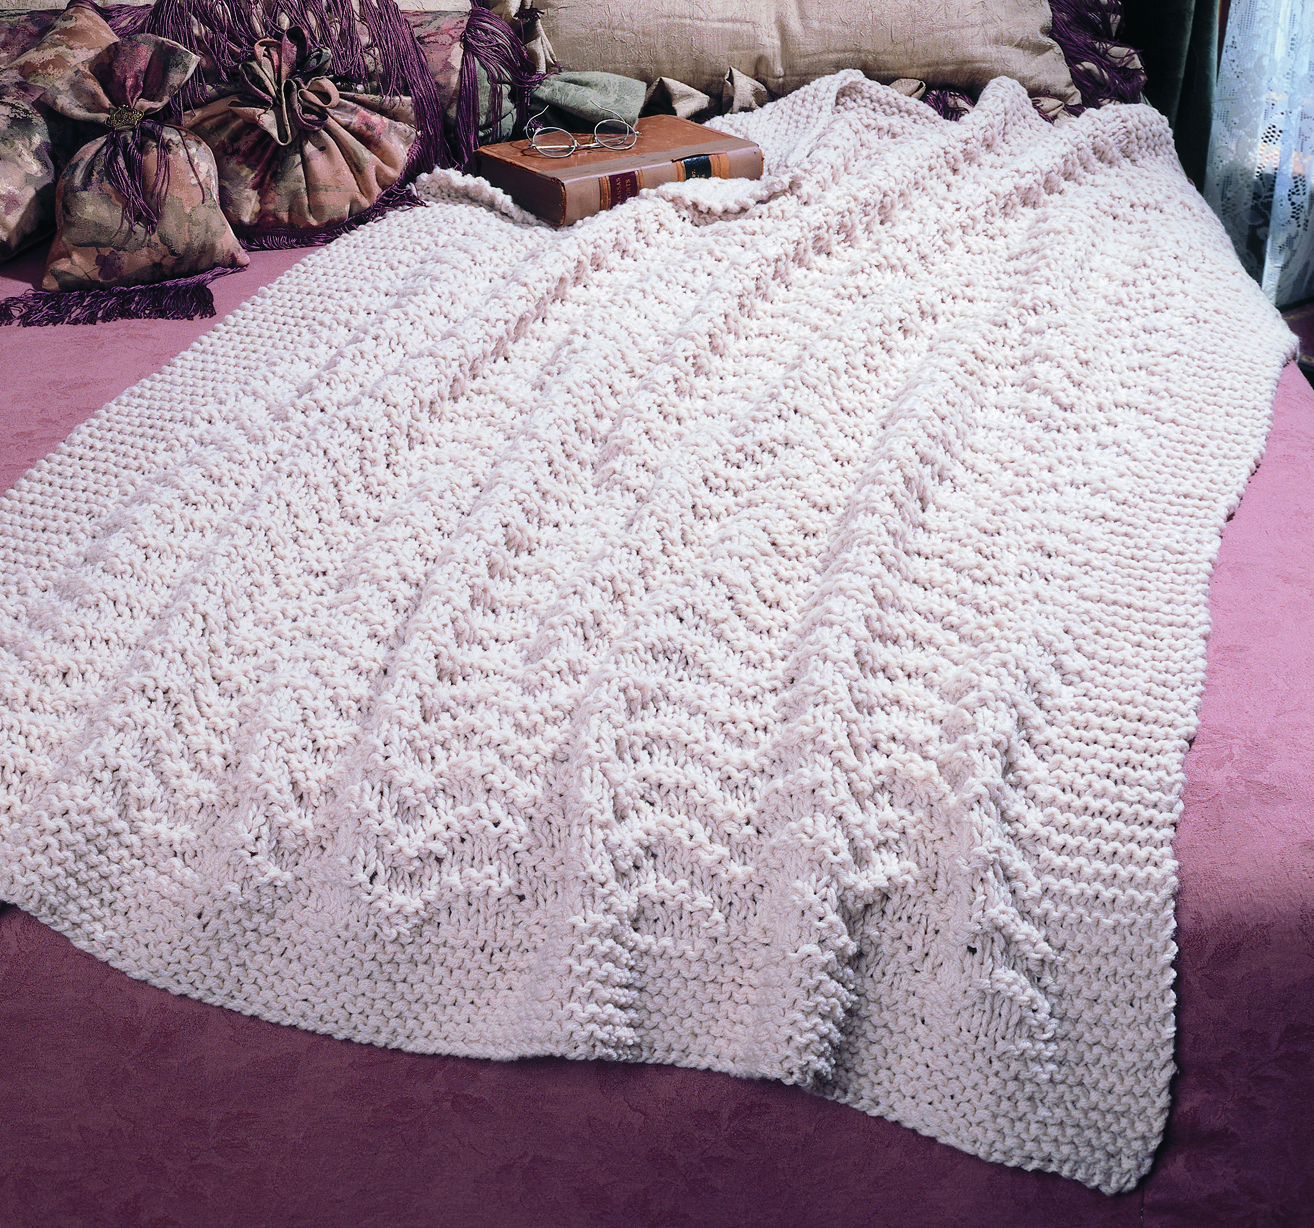 Knit a Blissful Afghan Pattern - Free and Easy pattern | Manta ...